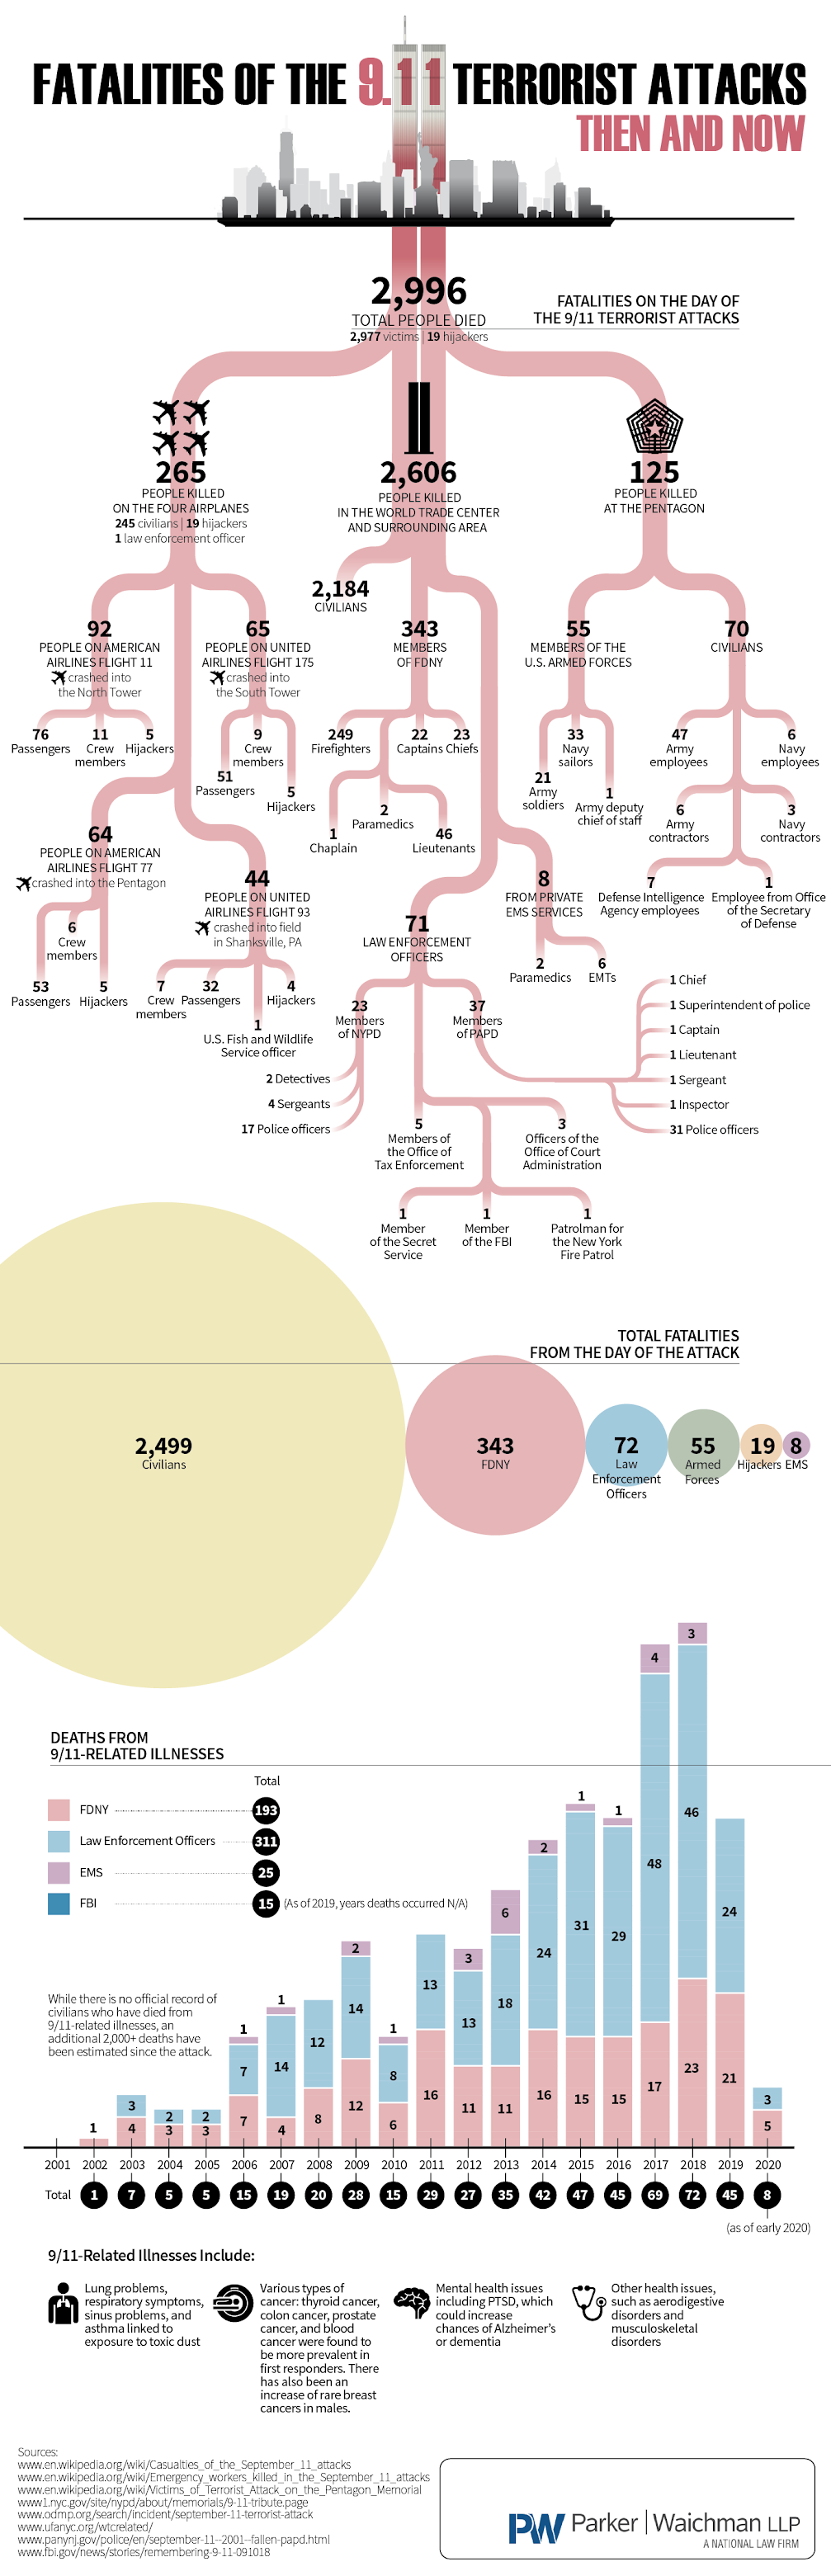 Fatalities Of The 9/11 Terrorist Attacks: Then And Now #infographic